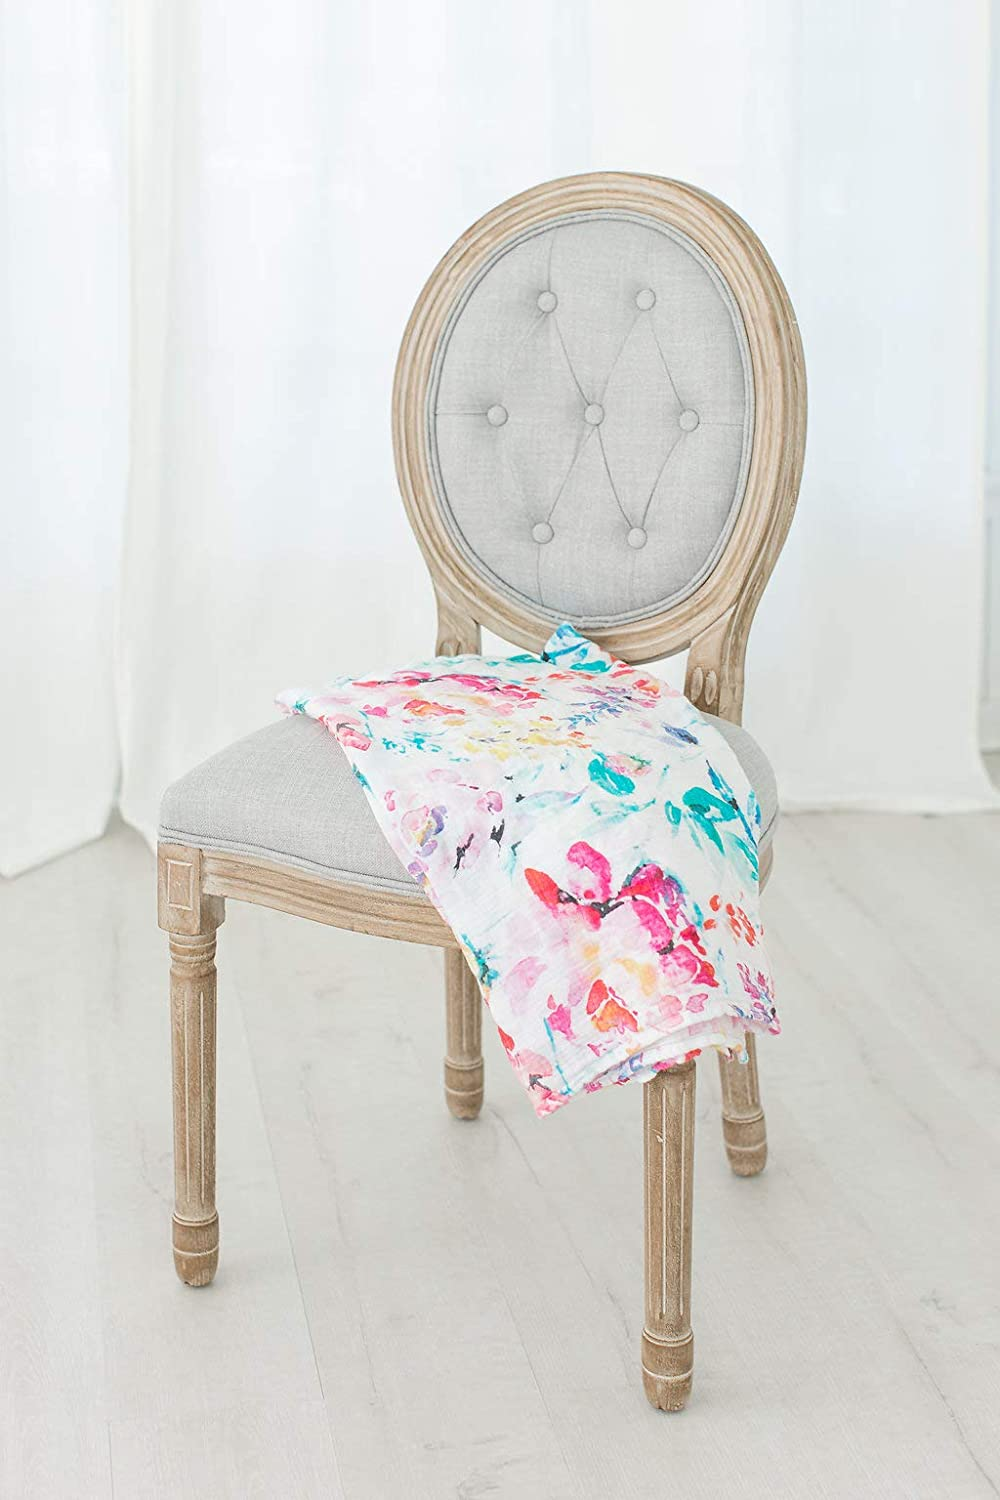 Bamboo /& Cotton Floral Swaddle Blanket Perfect Newborn Baby Gift Large 47 x 47 Receiving Blanket